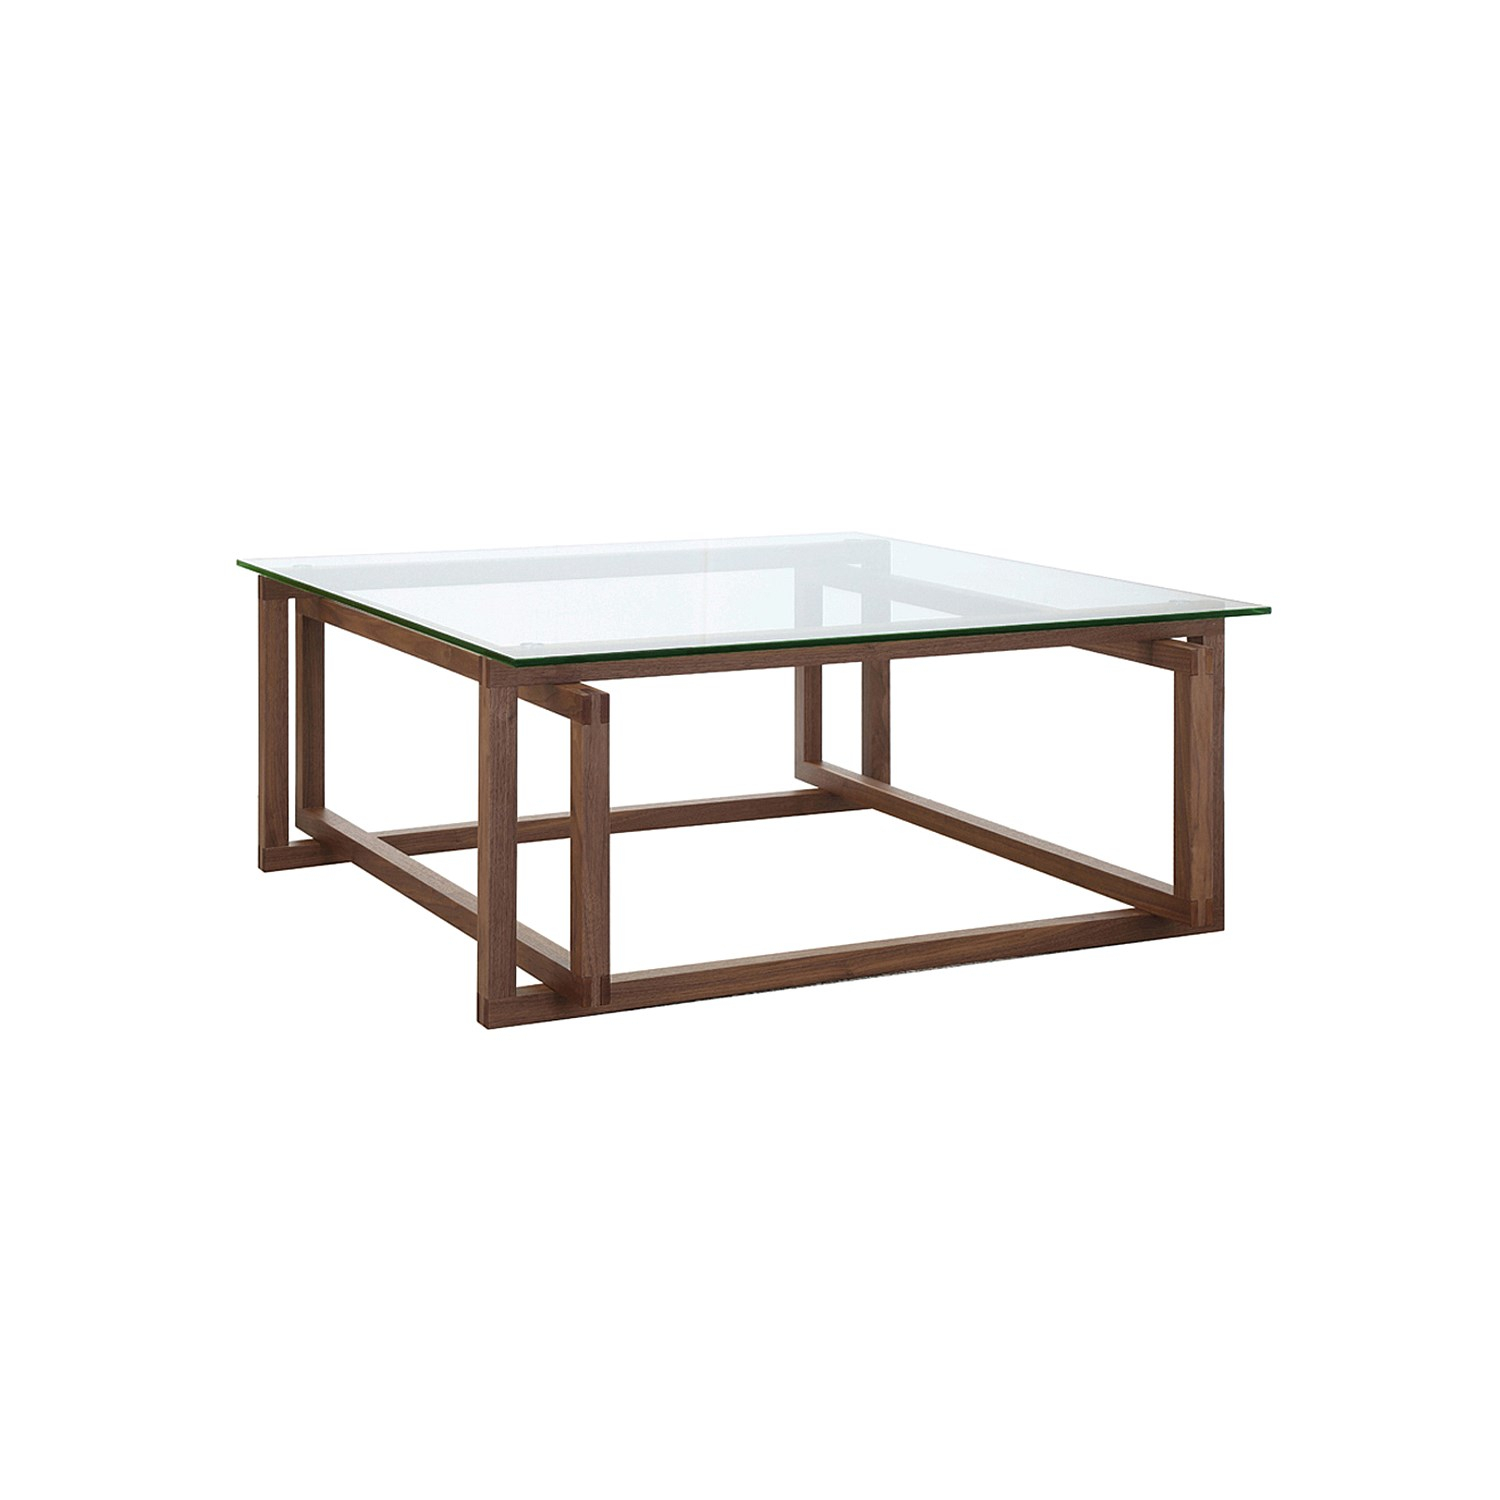 Living Room Furniture,view Range Online Now – Kyra Coffee Table With Regard To Kyra Console Tables (View 13 of 30)